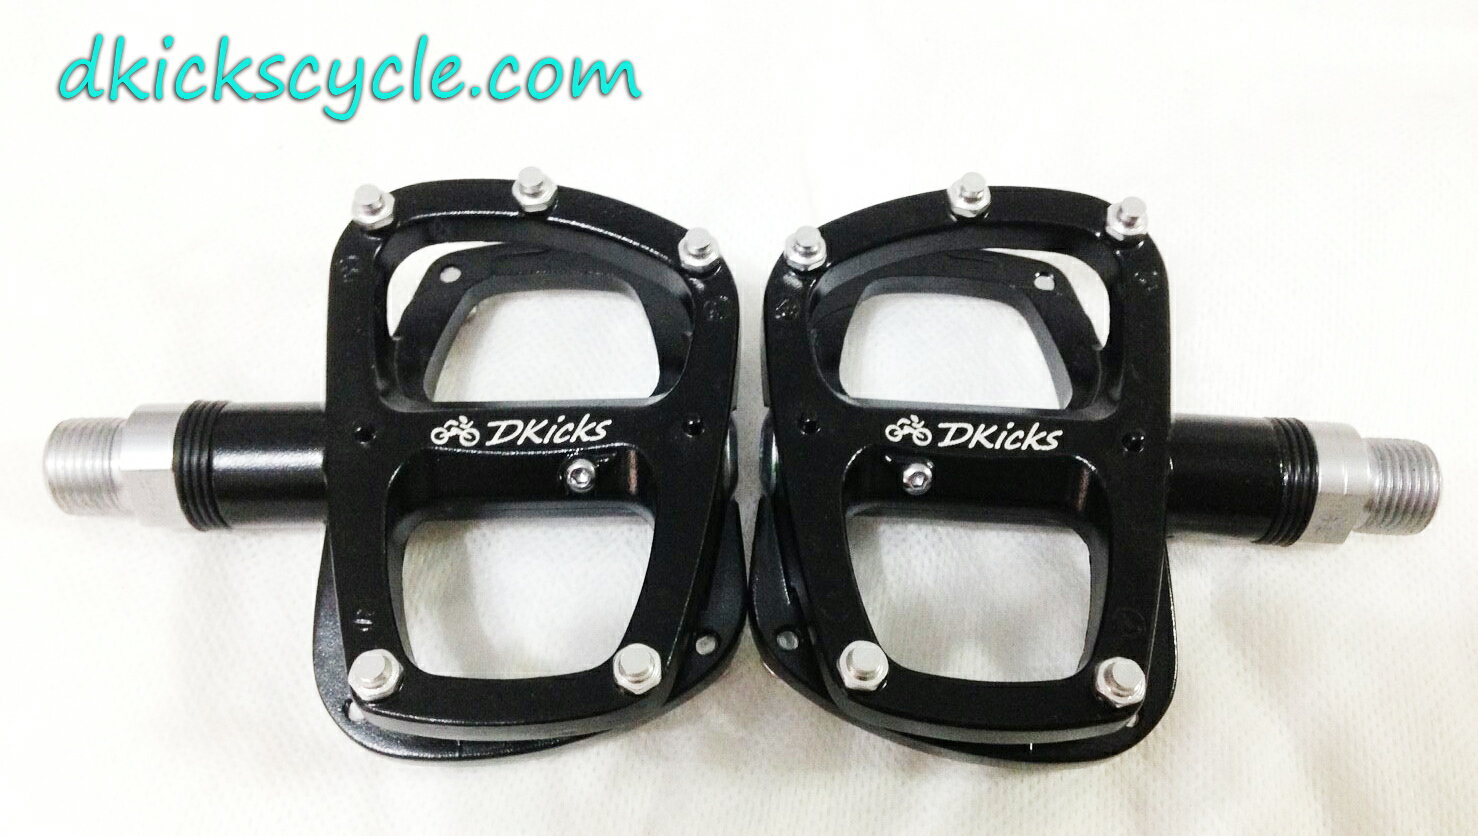 Dkicks cycle 自行車踏板 輕巧小尺寸 Bicycle pedal compac